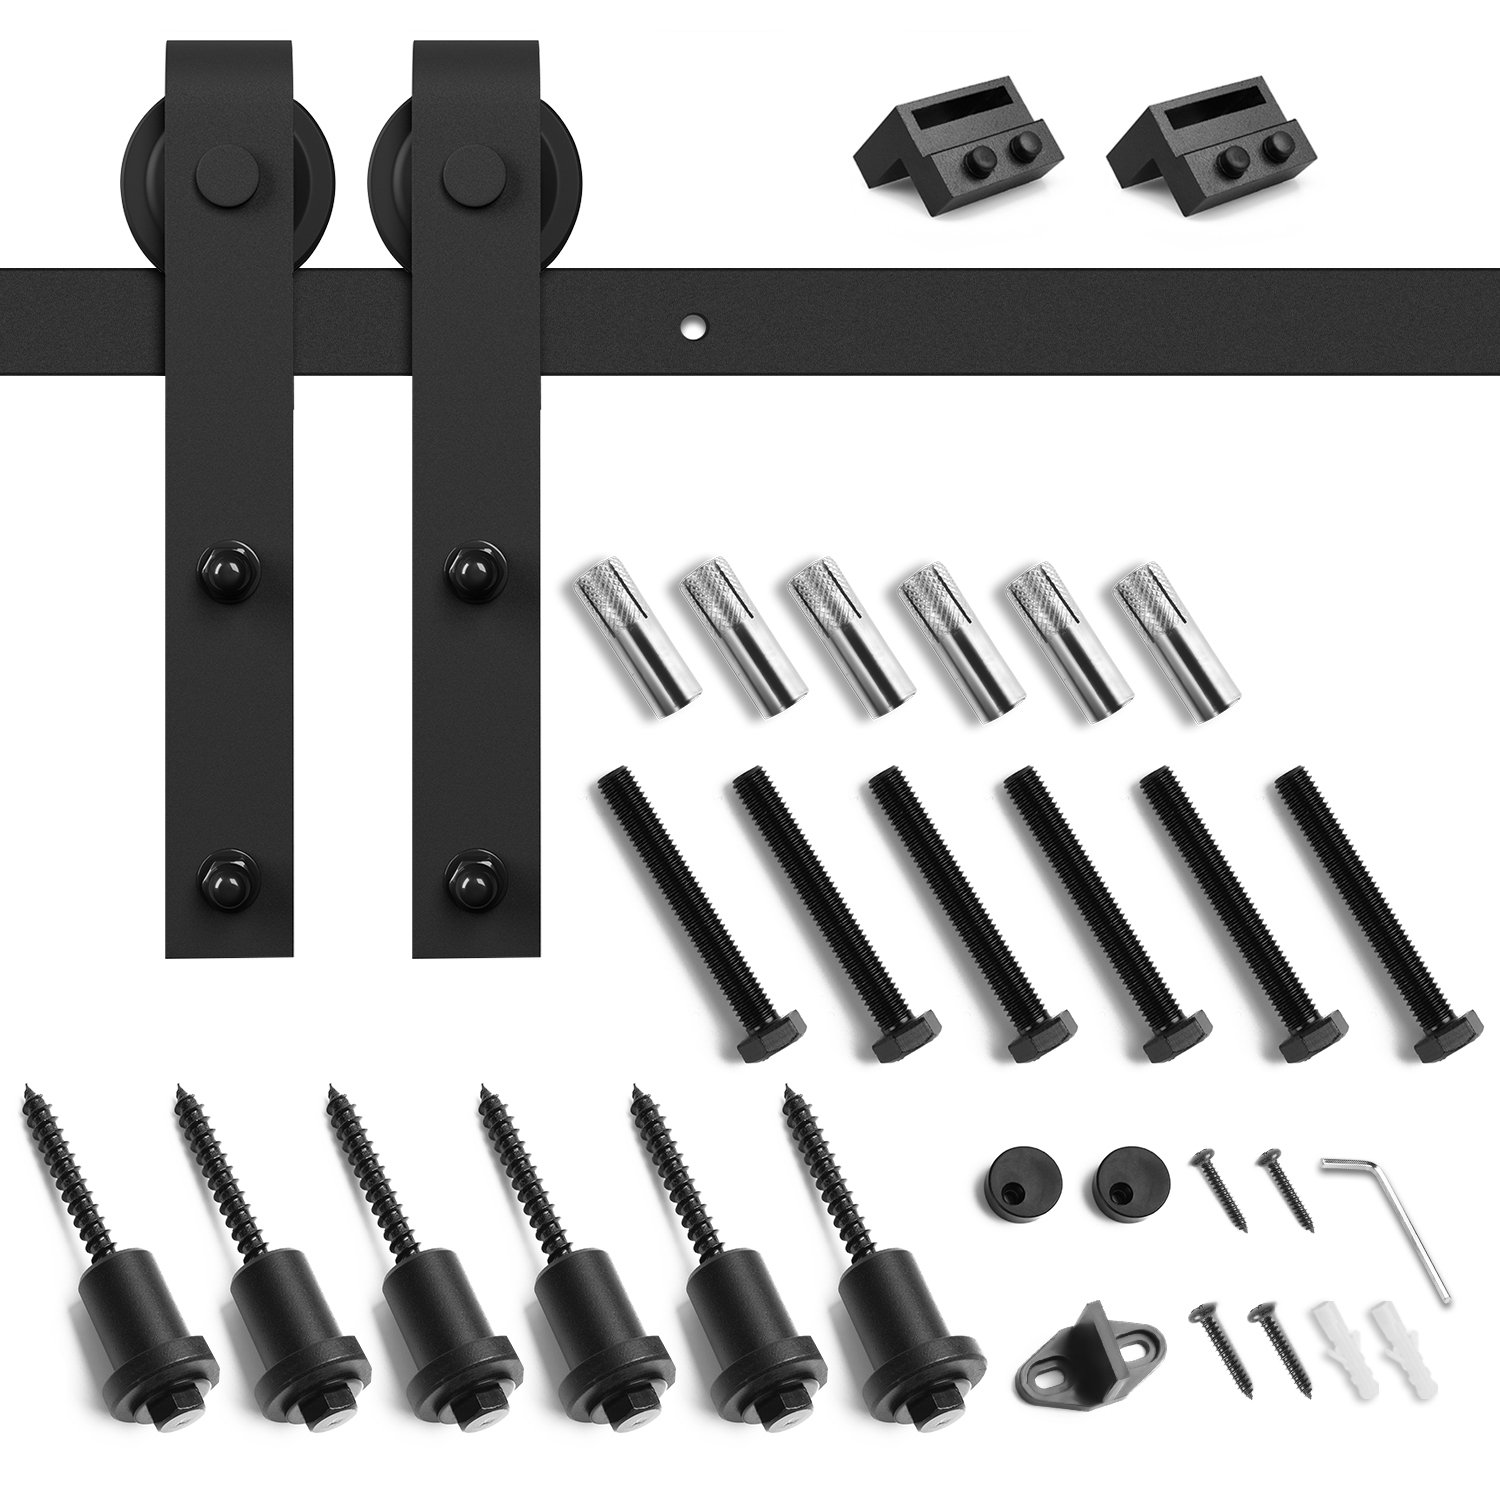 SMARTSTANDARD SDH-0080-STANDARD-BK Heavy Duty Sturdy Sliding Barn Door Hardware Kit, 8' SingleRail,Super Smoothly and Quietly, Simple and Easy to Install, Fit 42-48'' Wide DoorPanel by SMARTSTANDARD (Image #3)